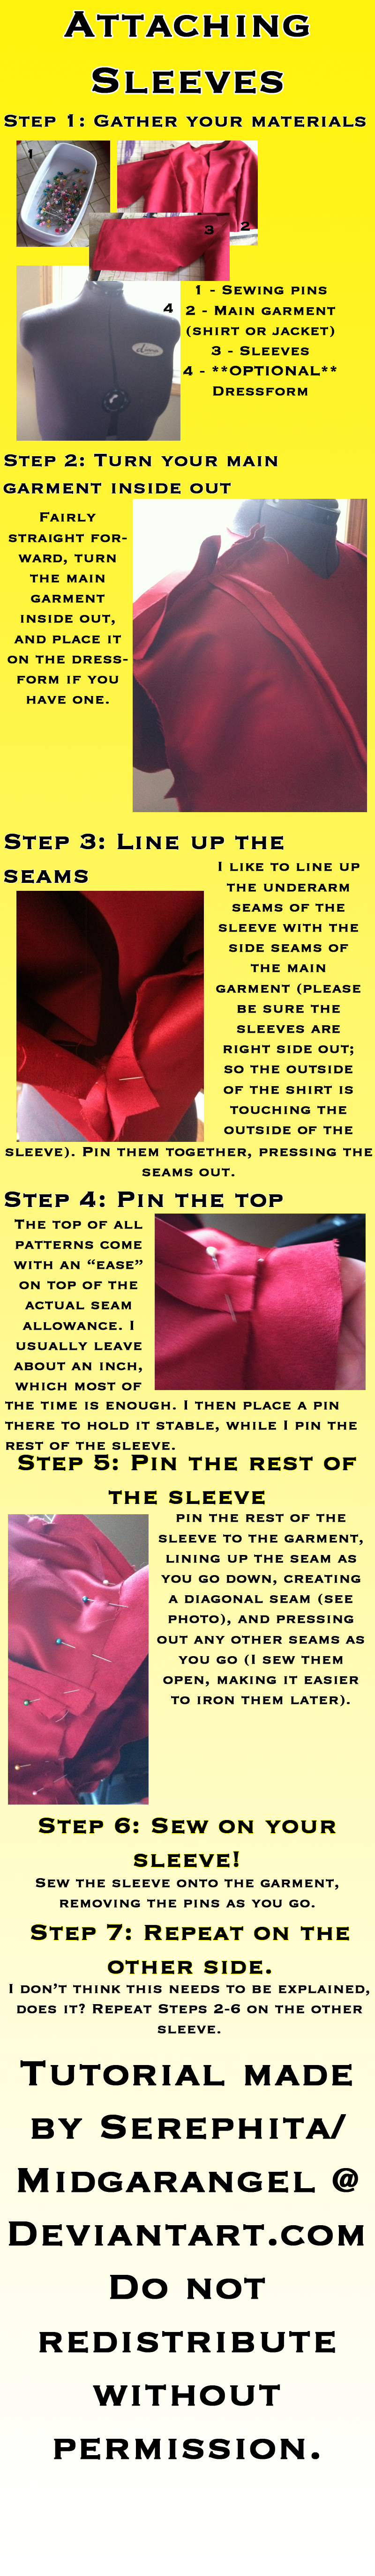 Attaching Sleeves Tutorial